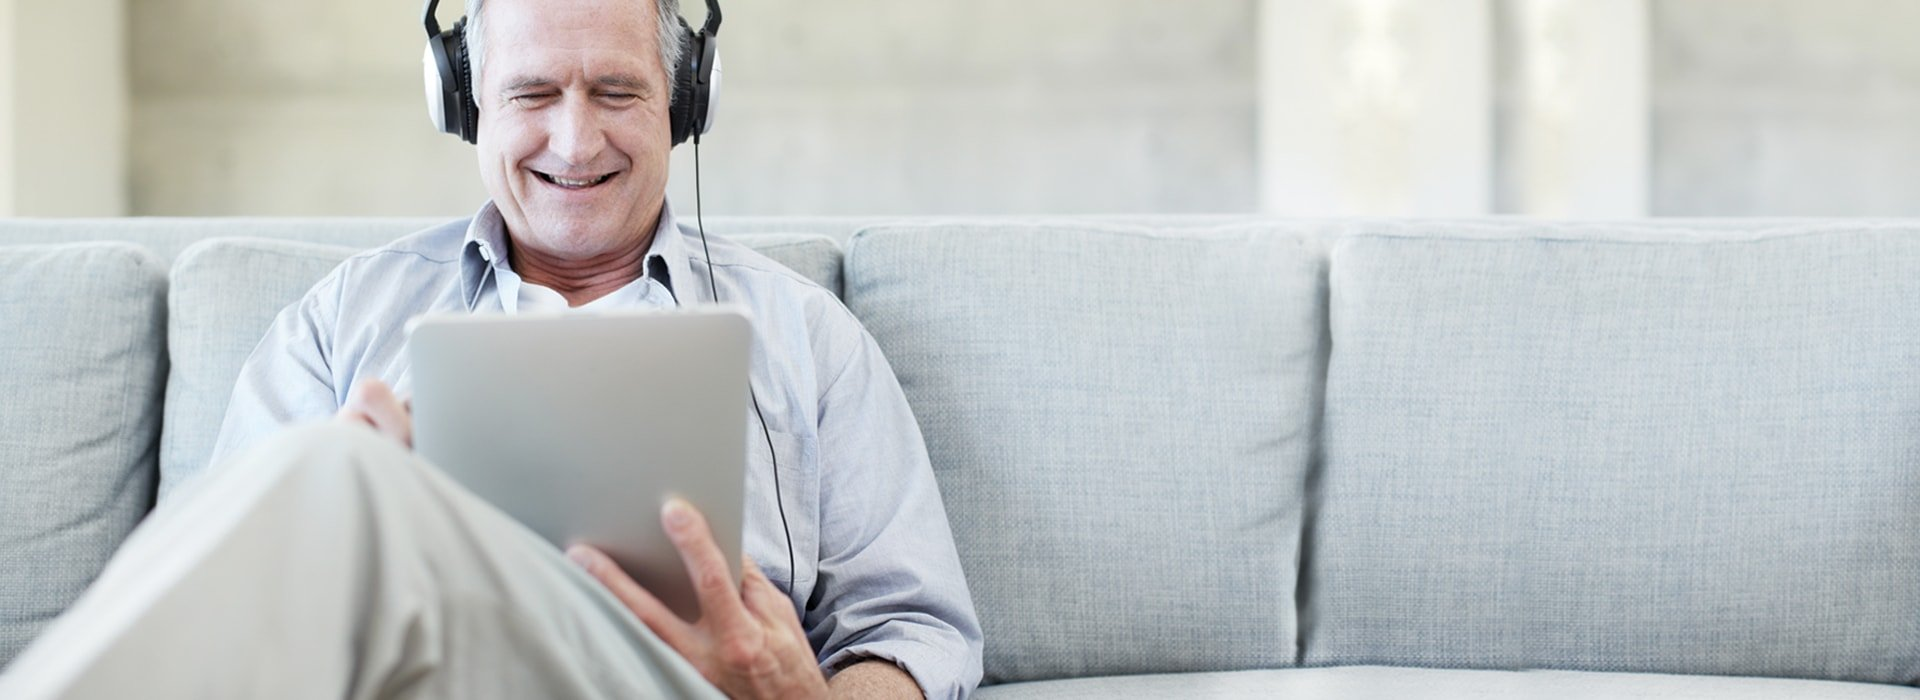 Man sitting on a couch checking his hearing with the online hearing test